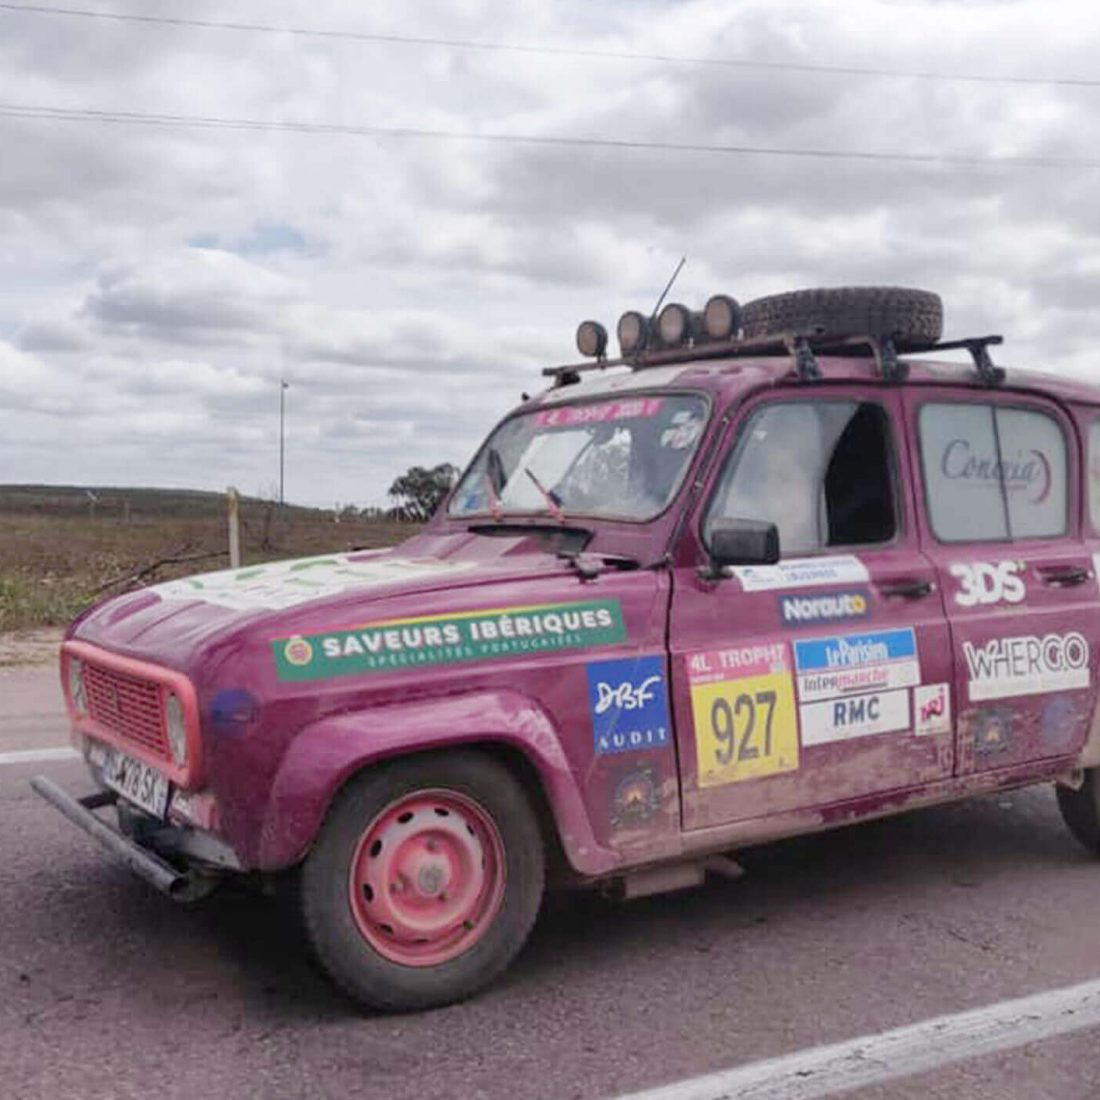 3ds-groupe-4ltrophy-rallye-desert-course-humanitaire-1